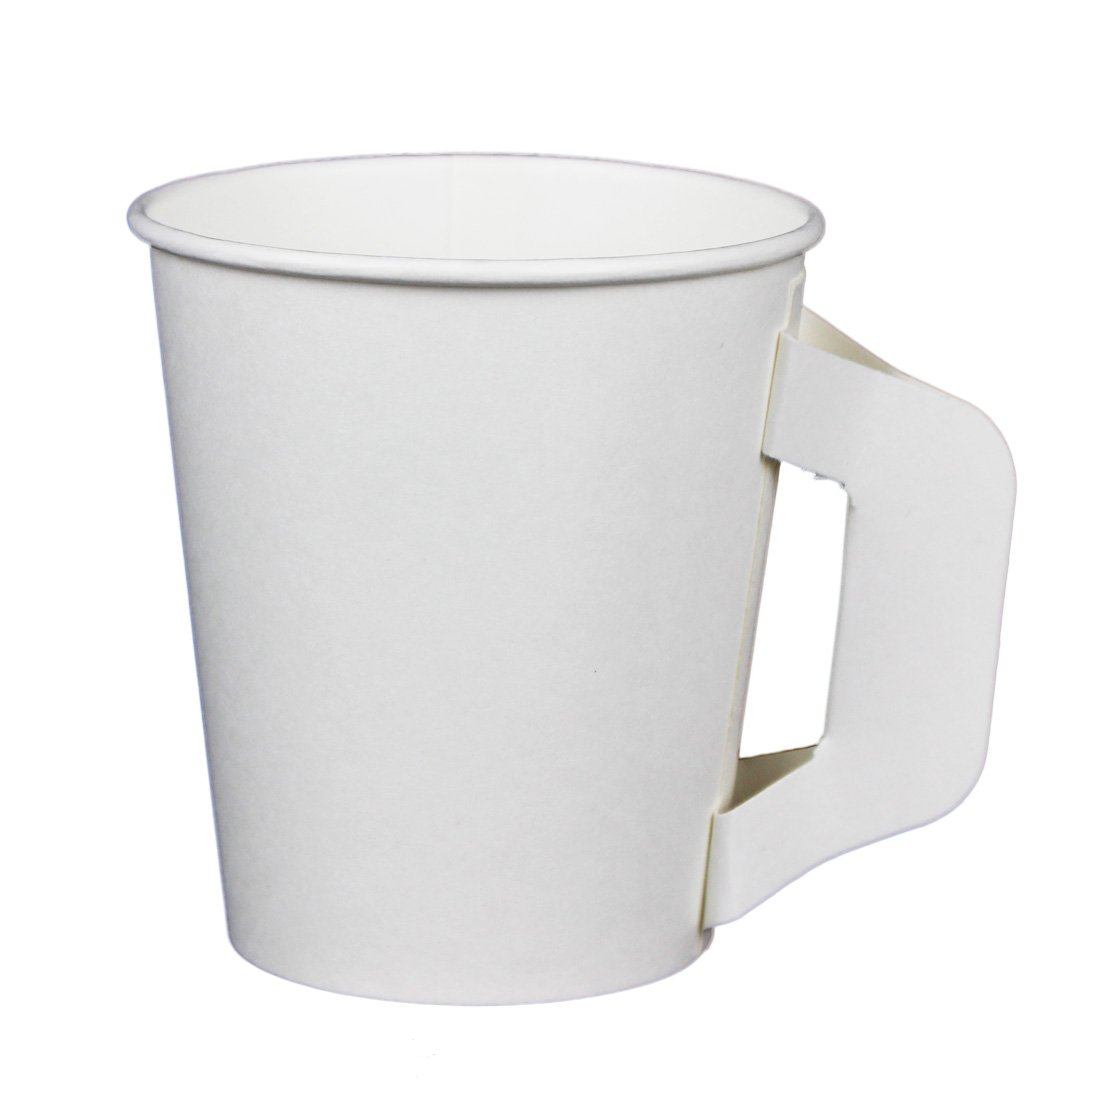 Hot Beverage Cup for Coffee, Tea, Water, Shots, Wheat Grass, Samples – With Handle (50ct 6oz)